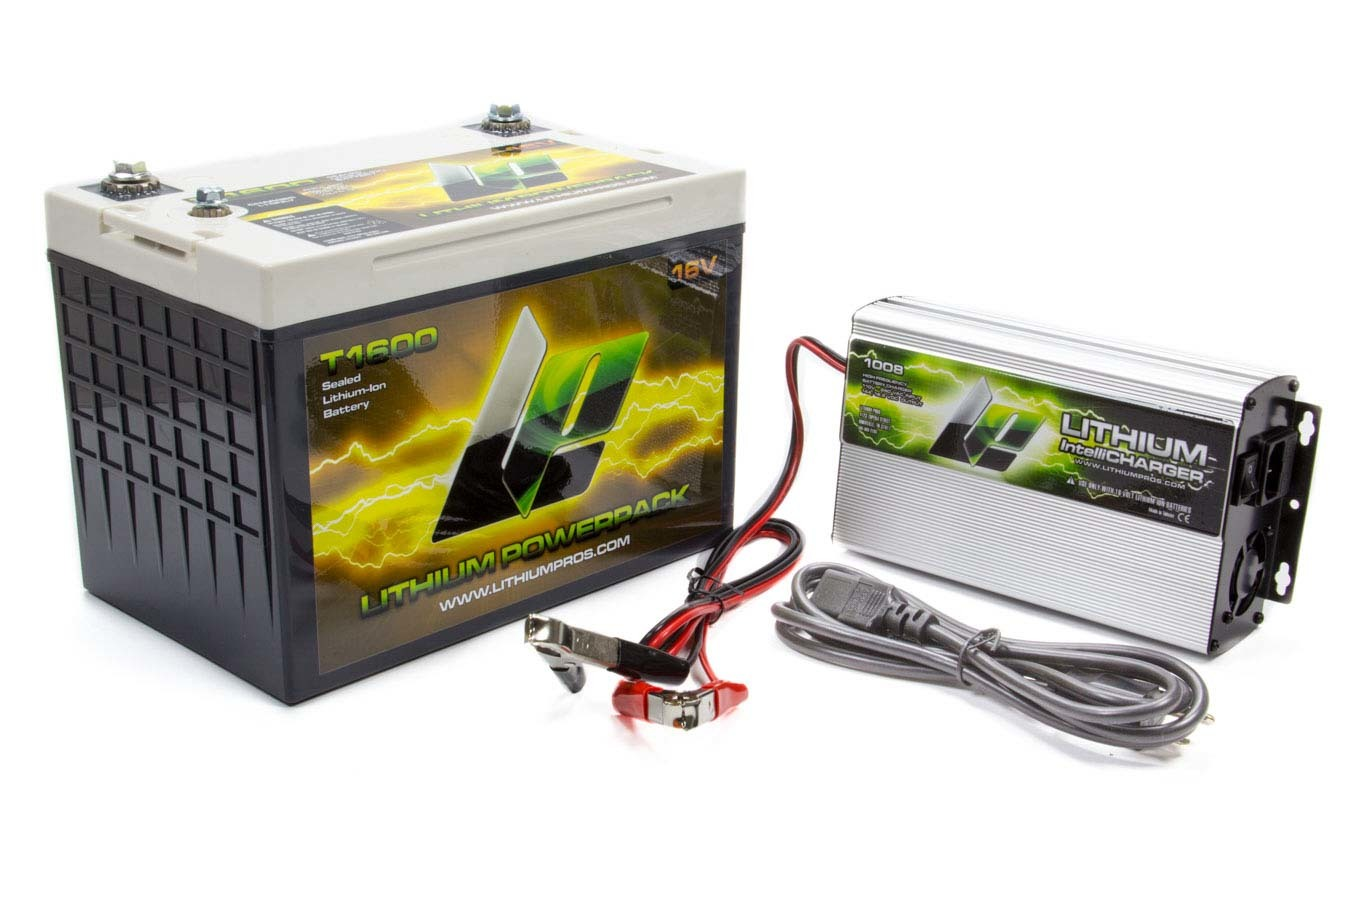 Lithium Pros Lithium-Ion Power Pack and Charger Kit